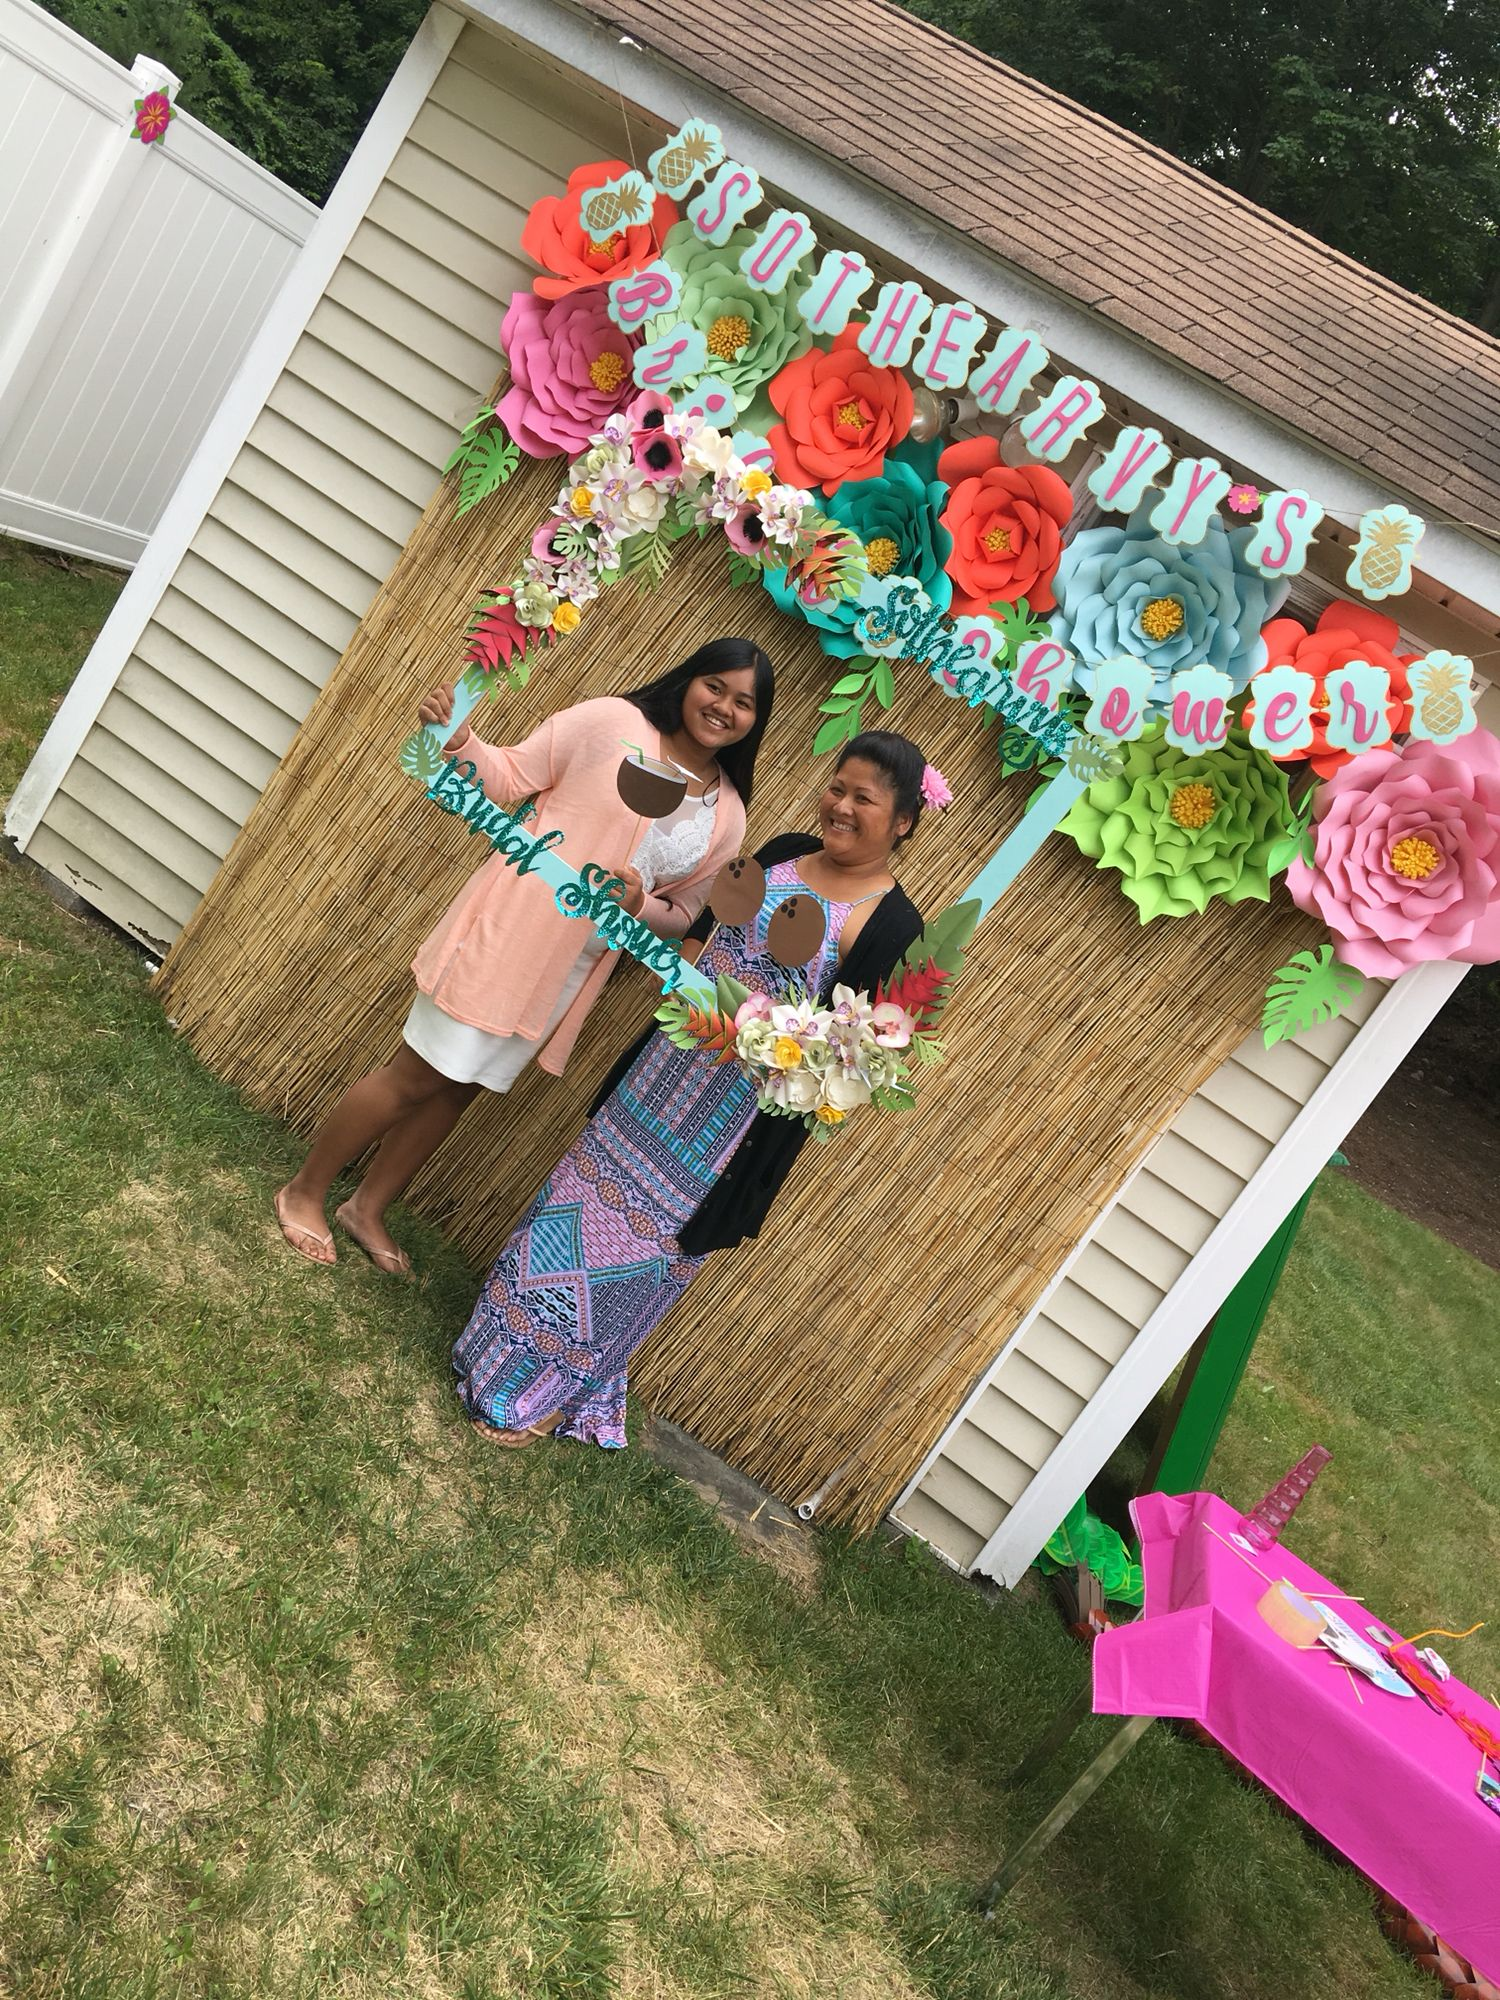 luau backdrop summer party plans pinterest luau and party